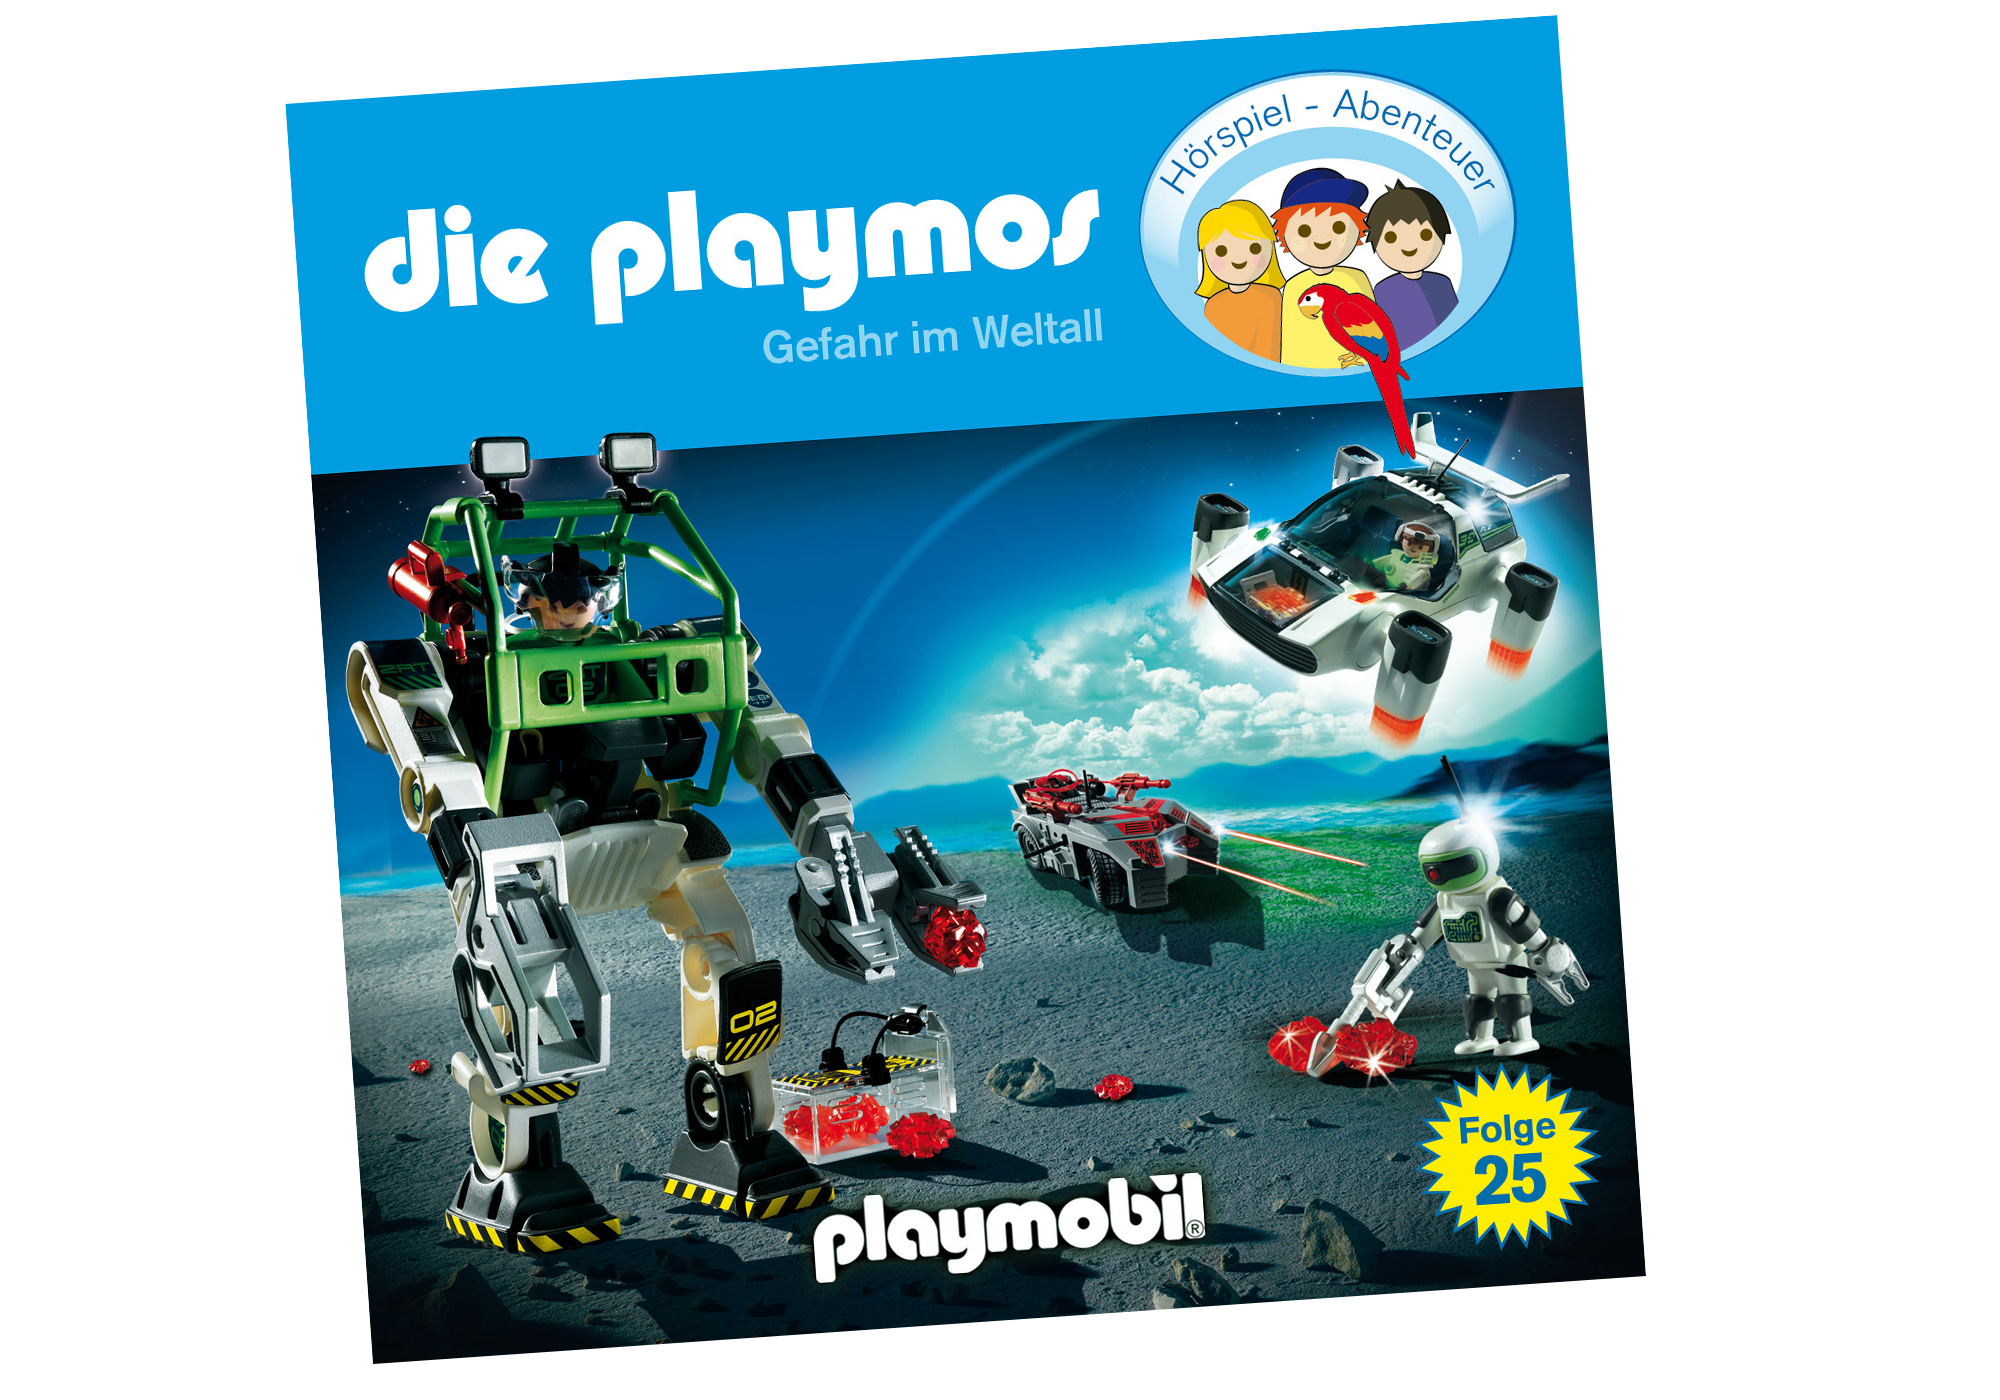 http://media.playmobil.com/i/playmobil/80331_product_detail